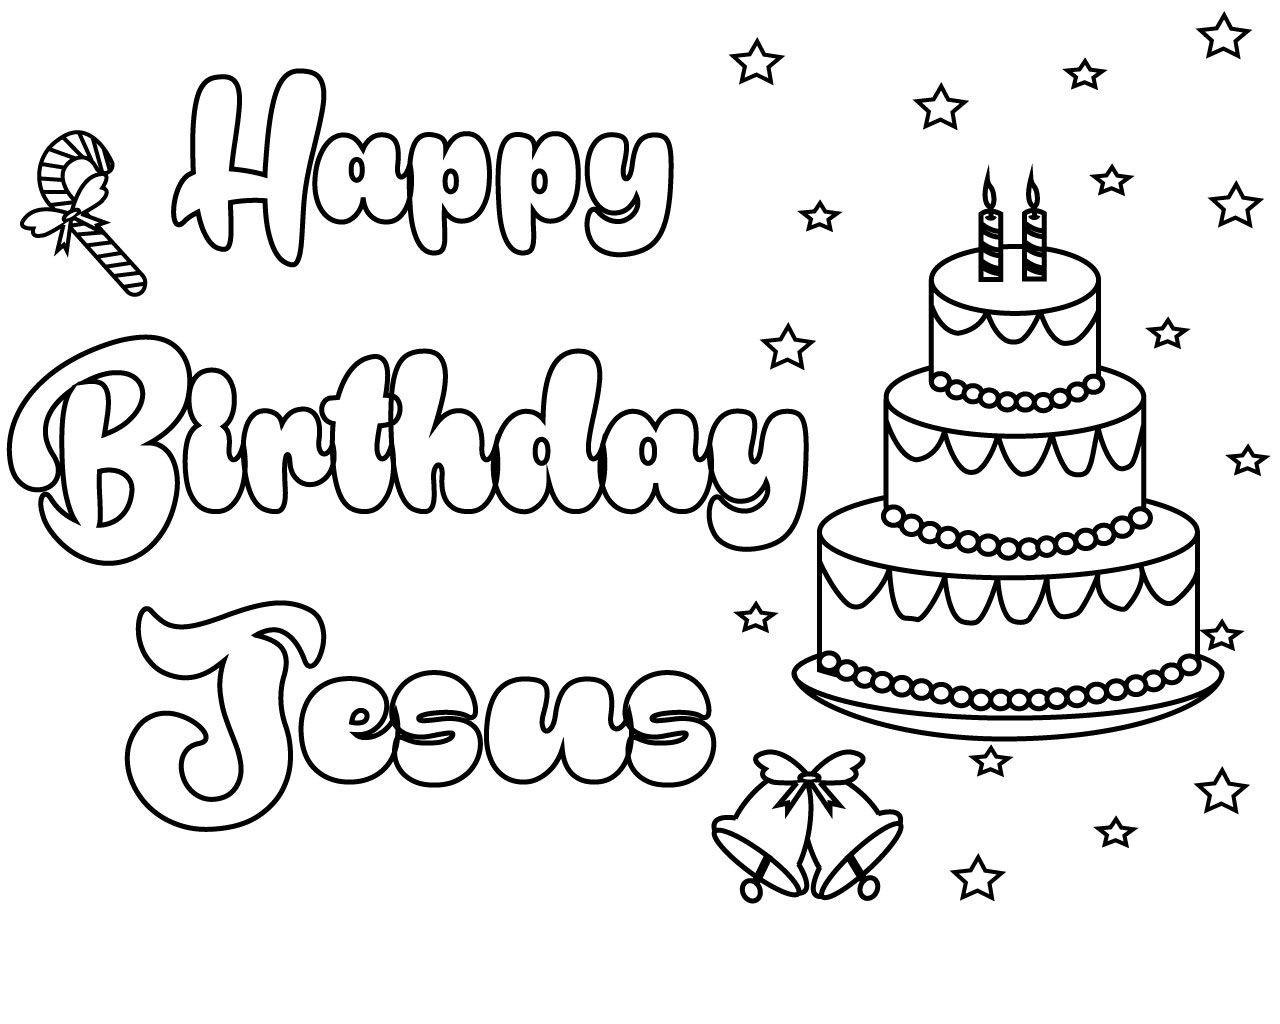 Happy Birthday Jesus Coloring Pages Free Printable